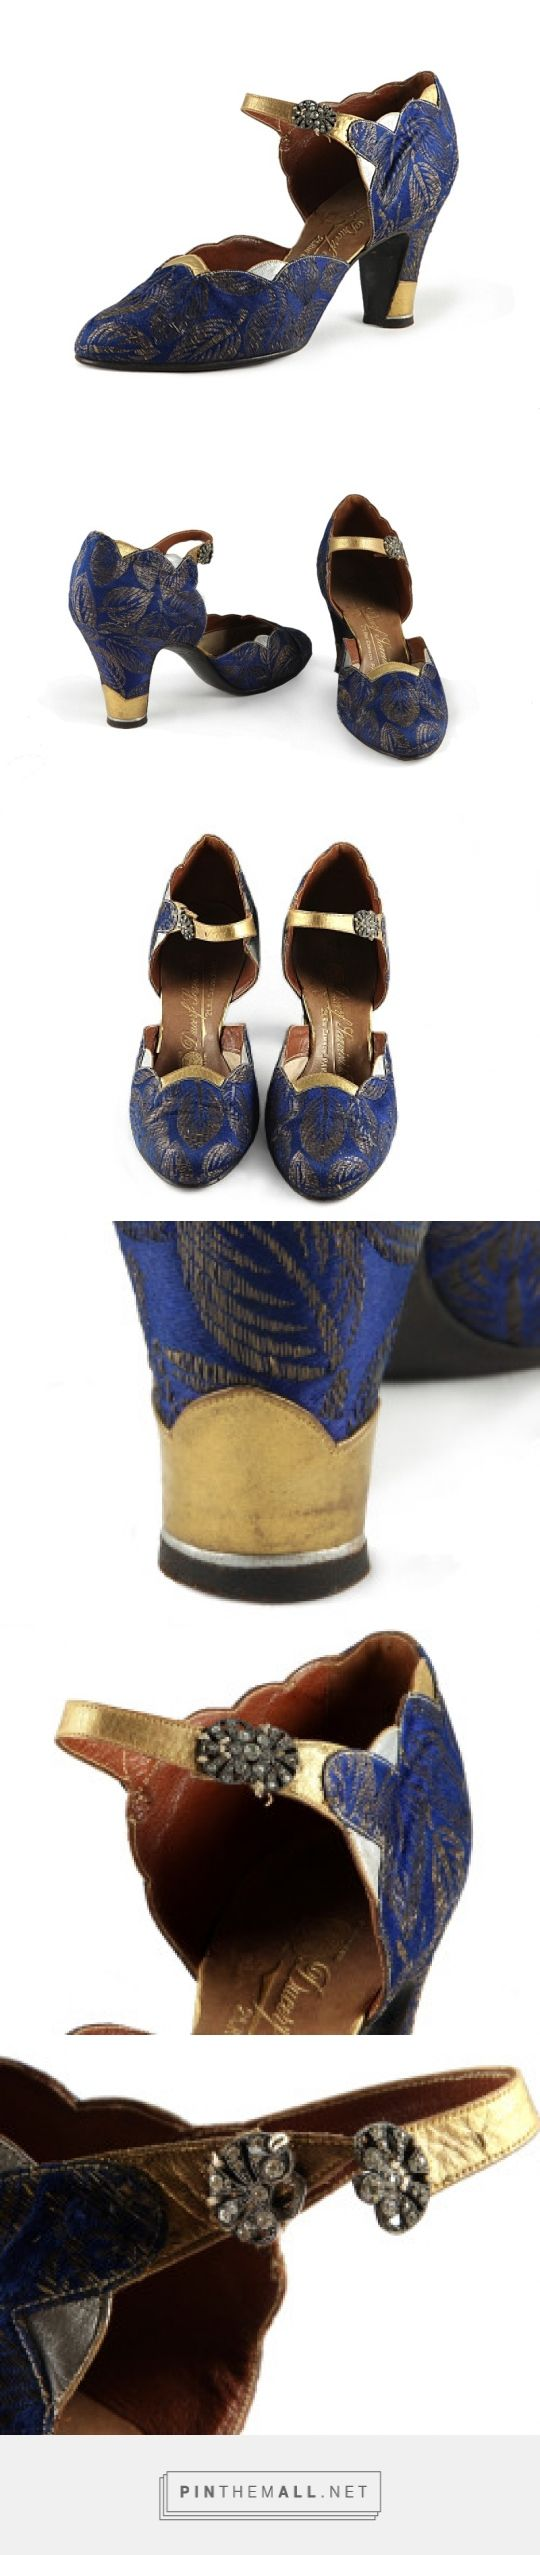 Silk Brocade and Metallic Leather Evening Shoes, ca. 1928 Ducerf Scavini and Fils